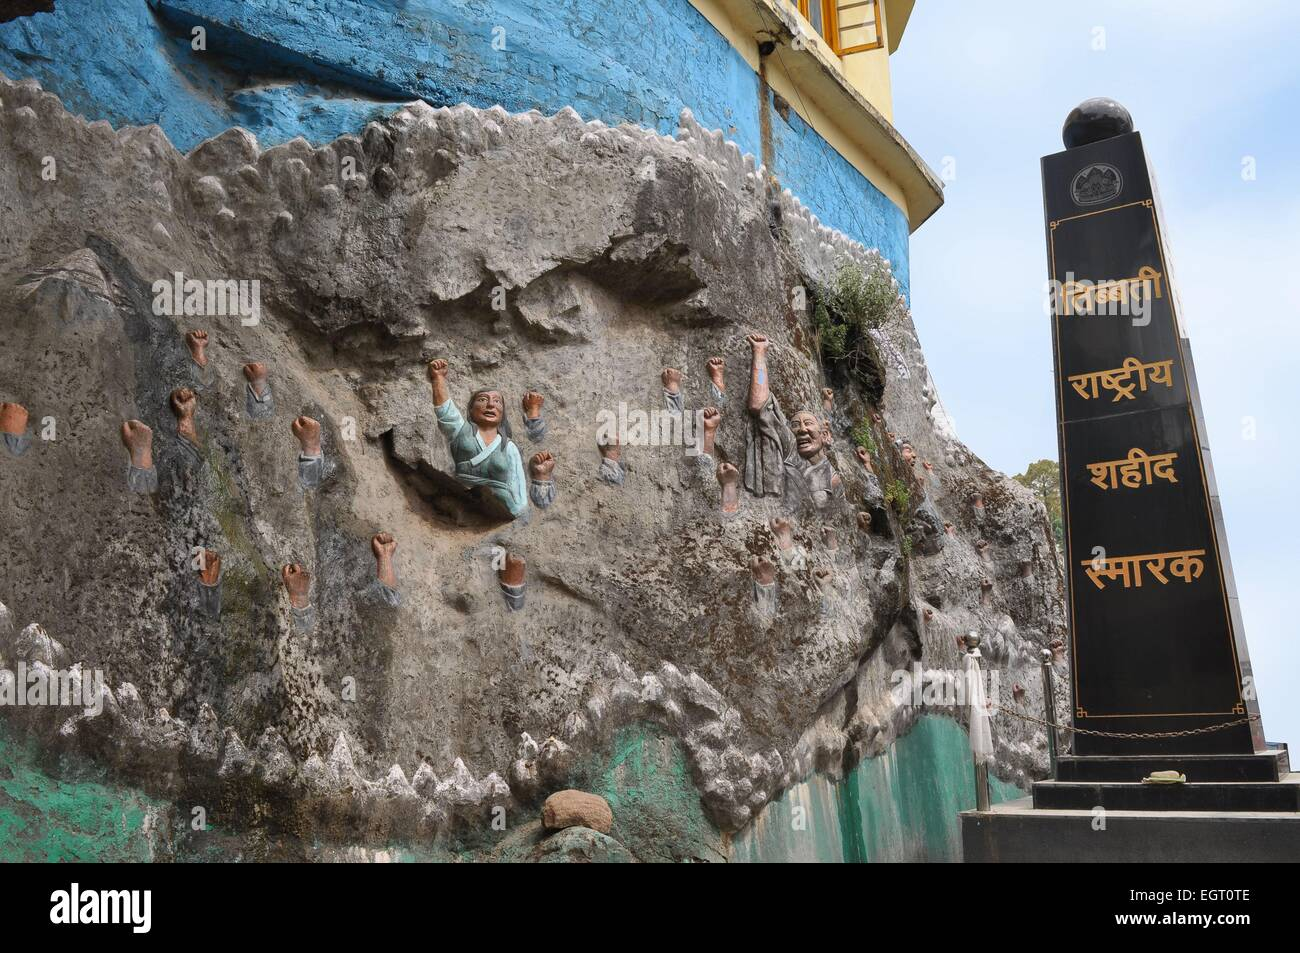 Tibet freedom and independance monument in Dharamsala - Stock Image